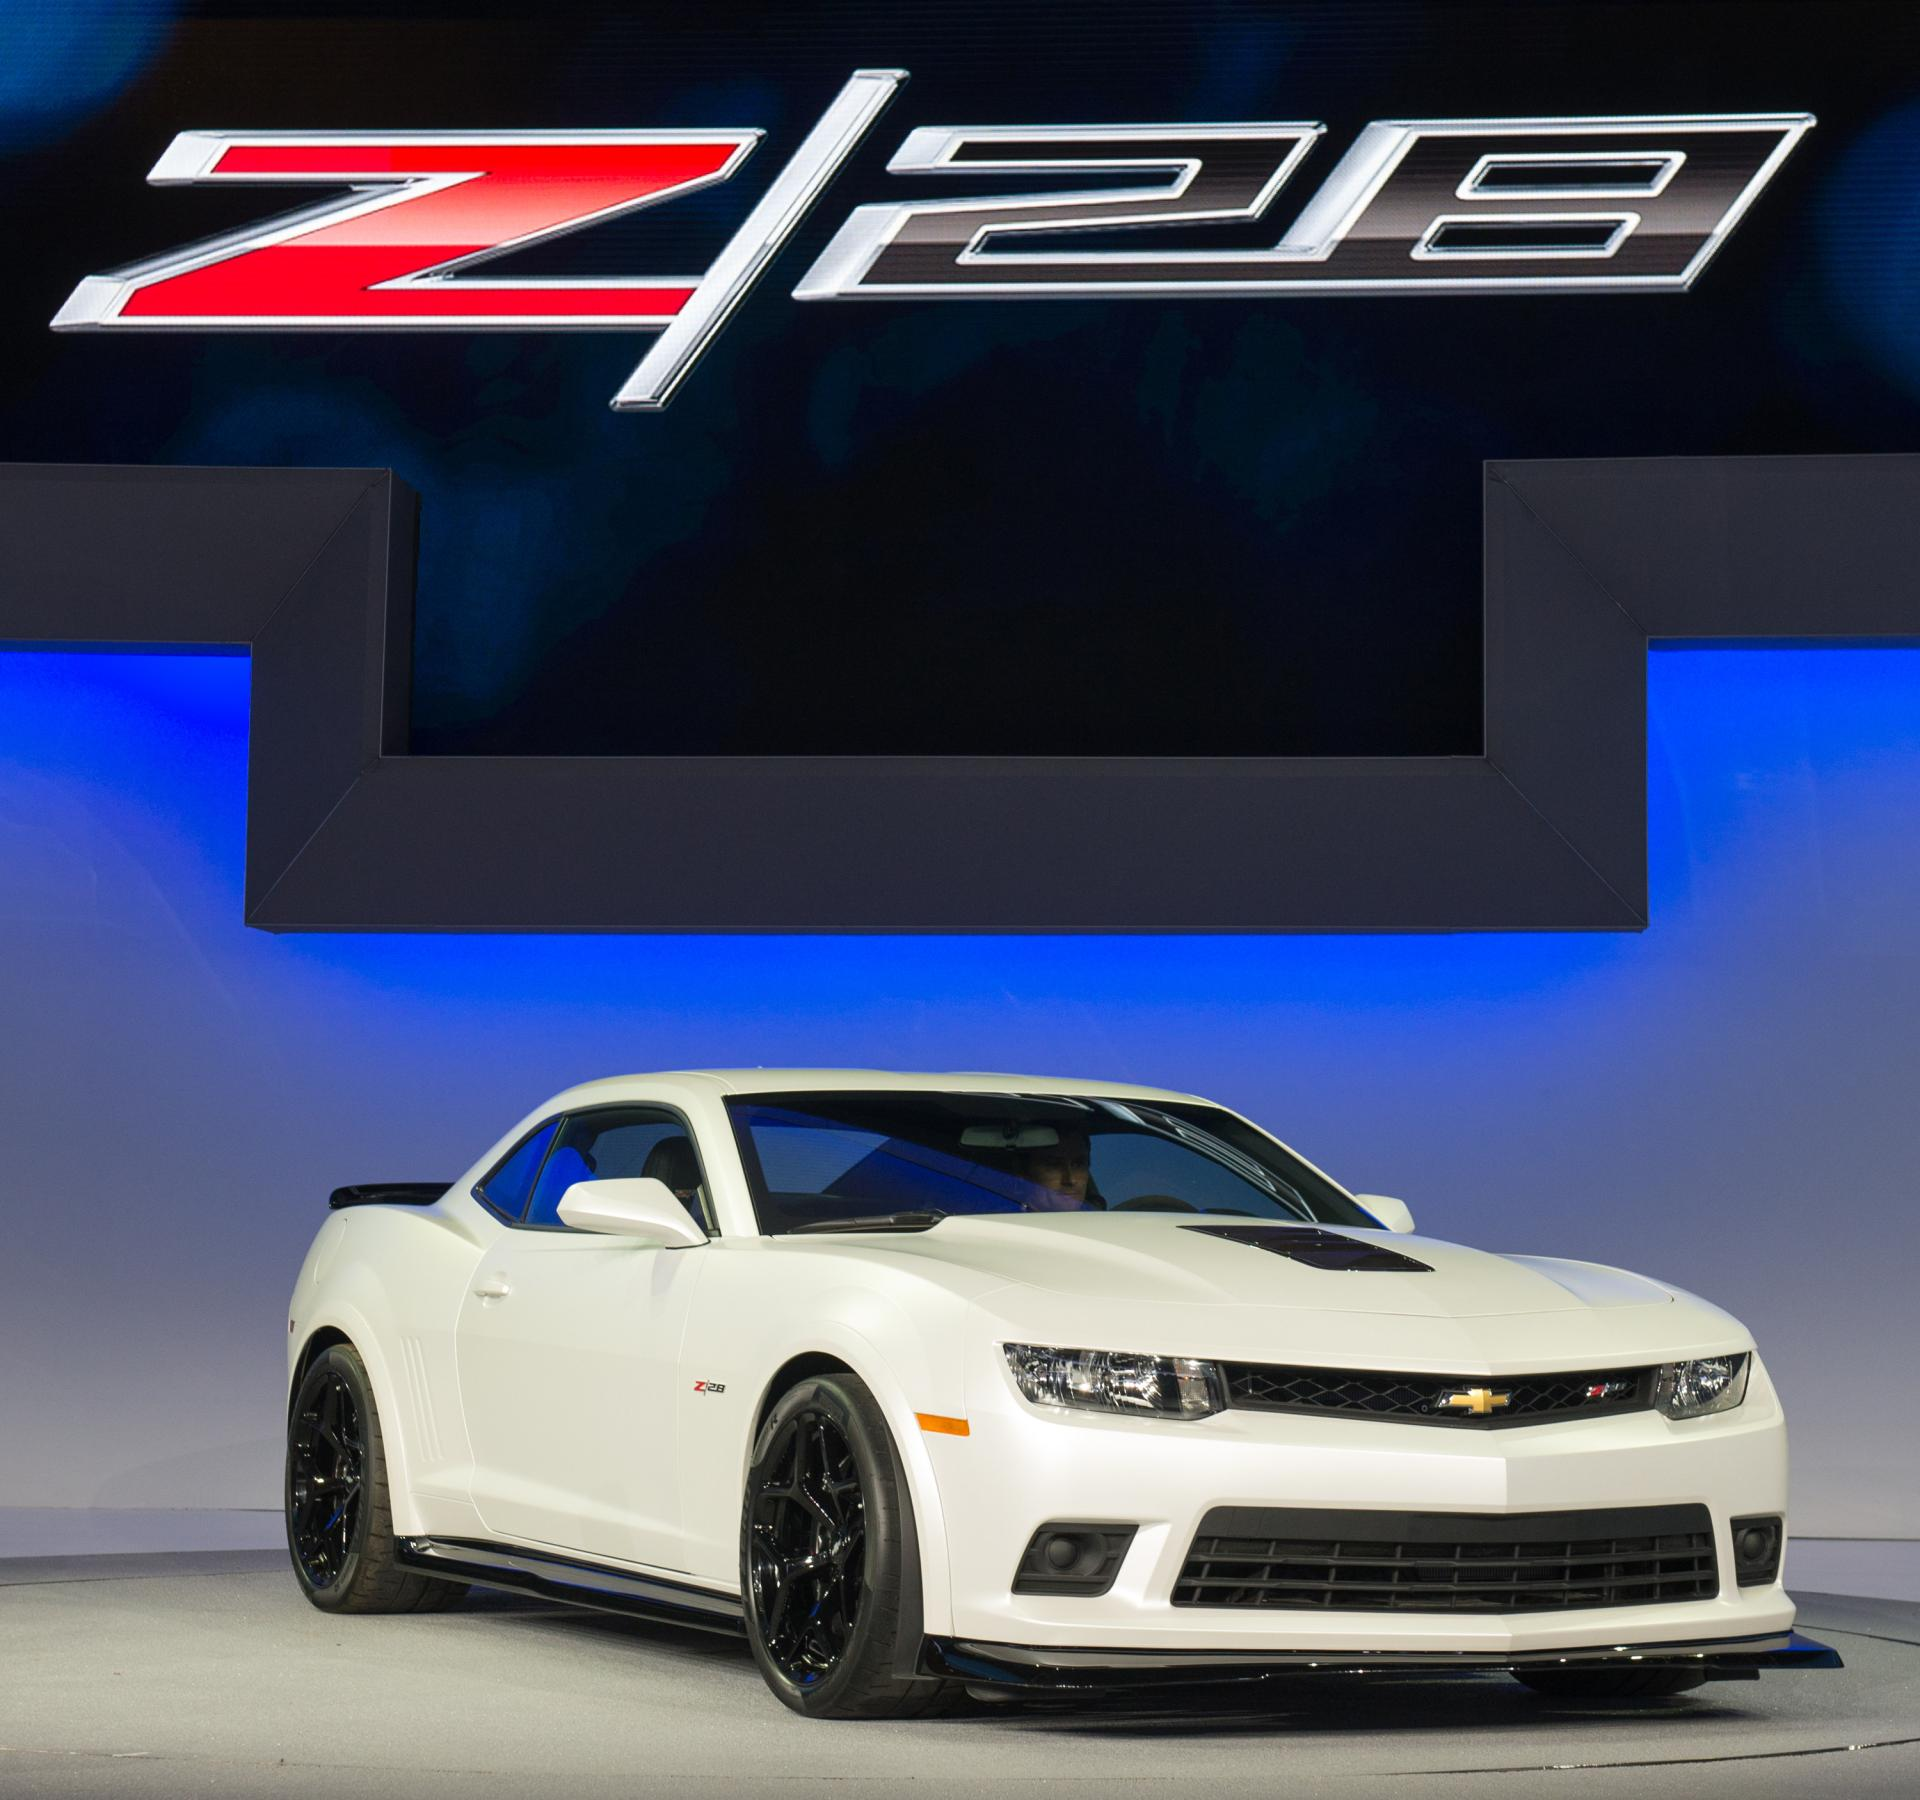 2014 chevrolet camaro z28 images photo 2014 camaro z28 ny auto show. Cars Review. Best American Auto & Cars Review